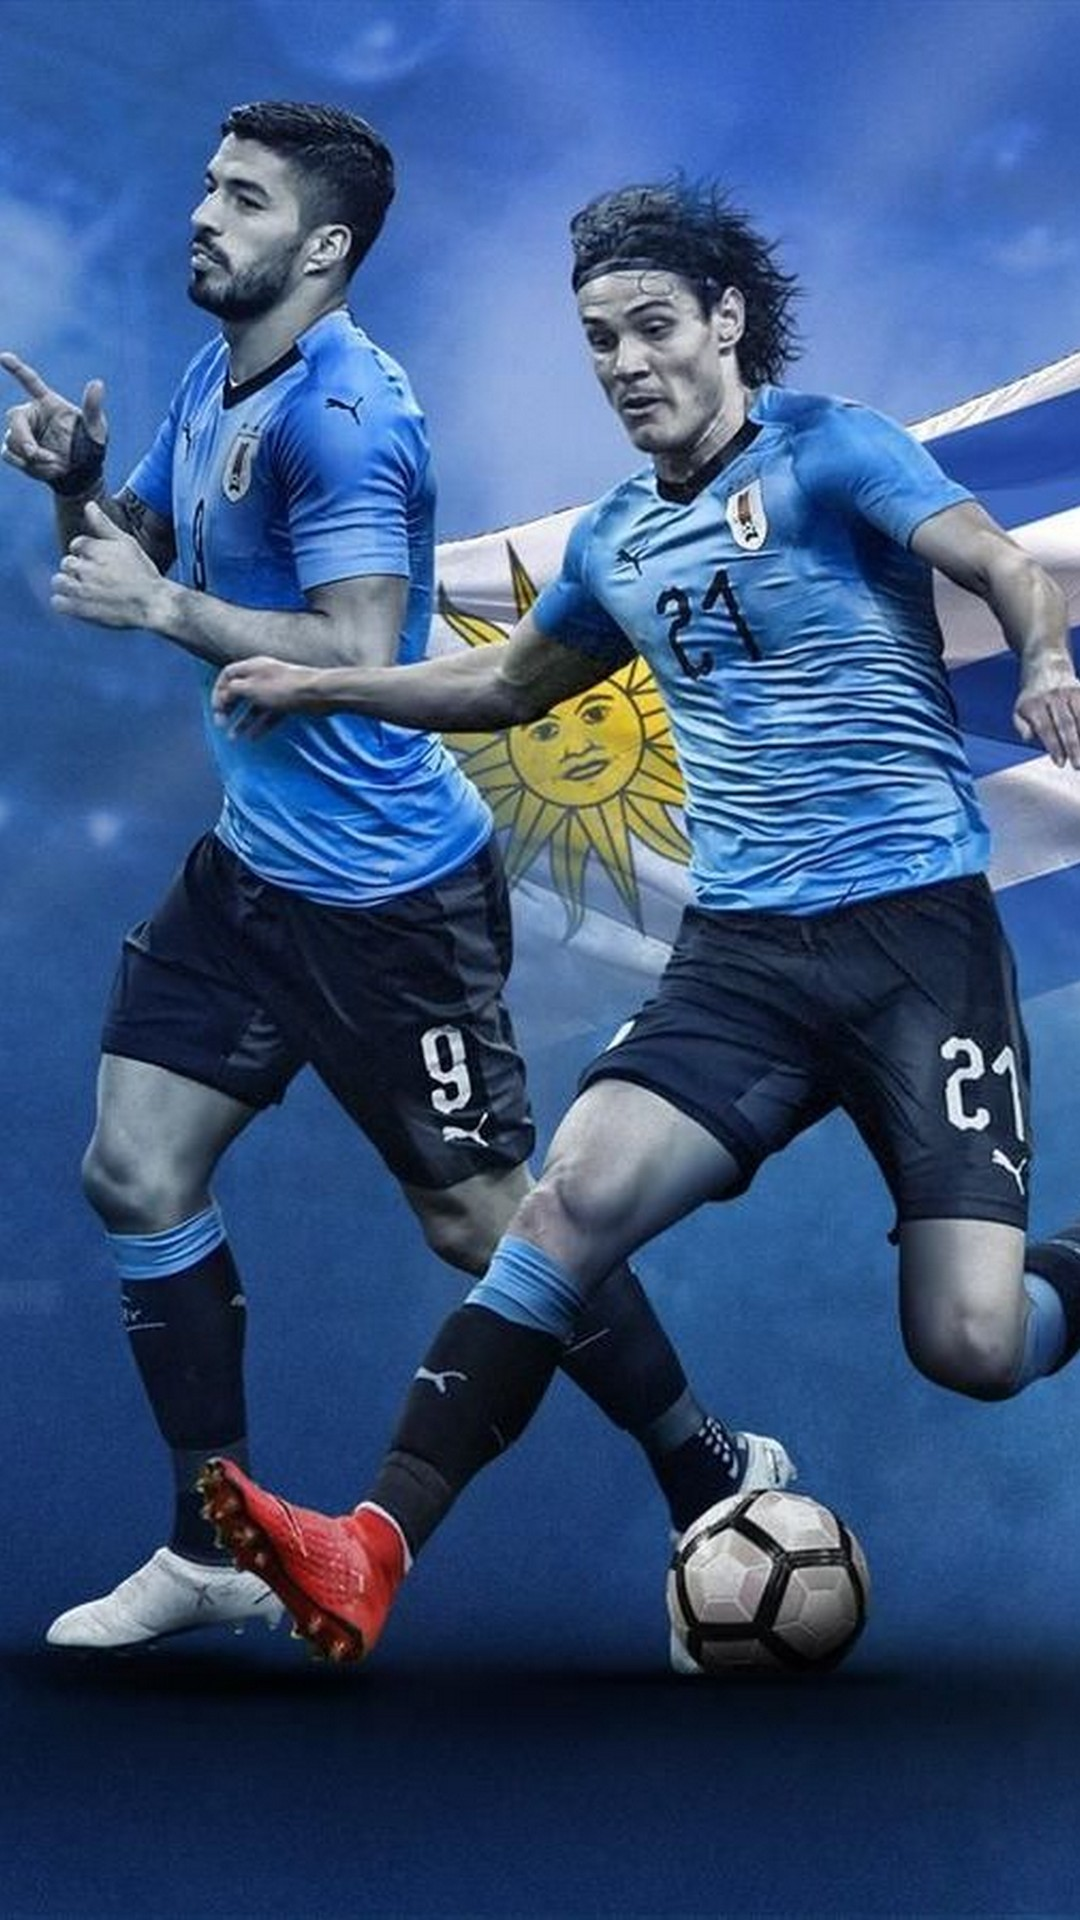 Euro 2021, france national team, bundesliga players in squad (10 pictures). Iphone Wallpaper Uruguay National Team 2021 3d Iphone Wallpaper